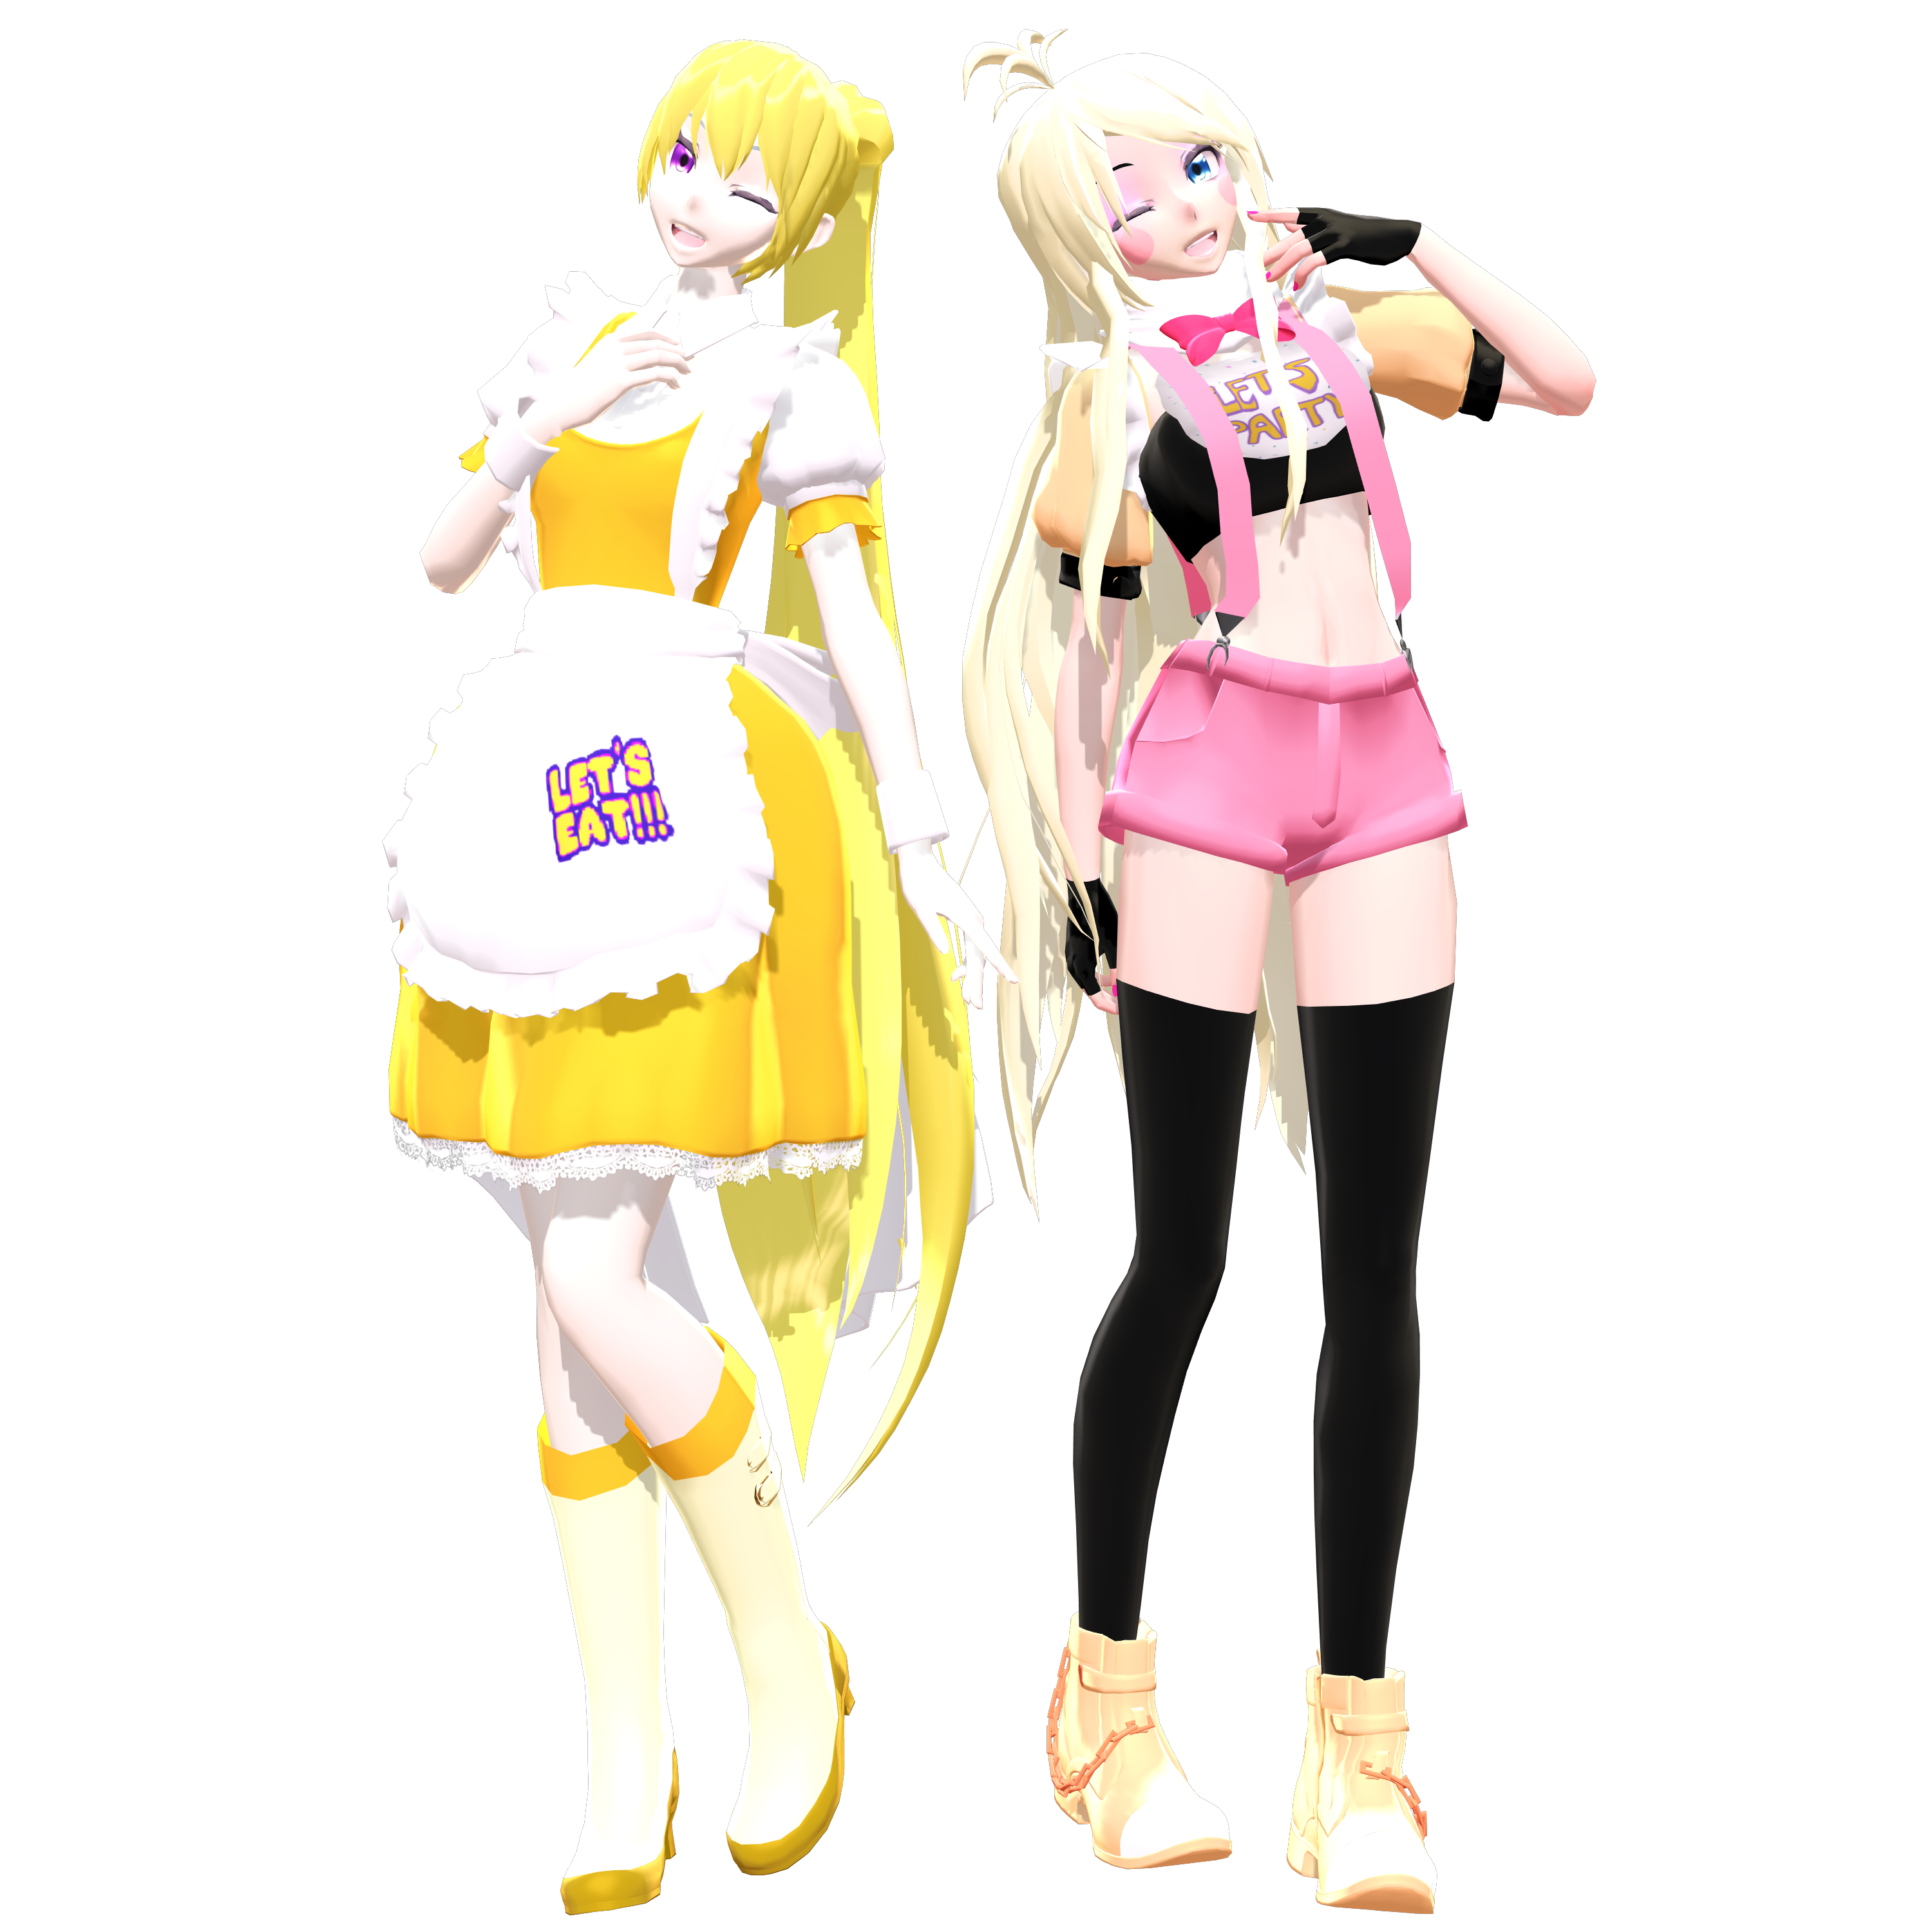 Mmd fnaf chica and toy chica by sharplefear on deviantart